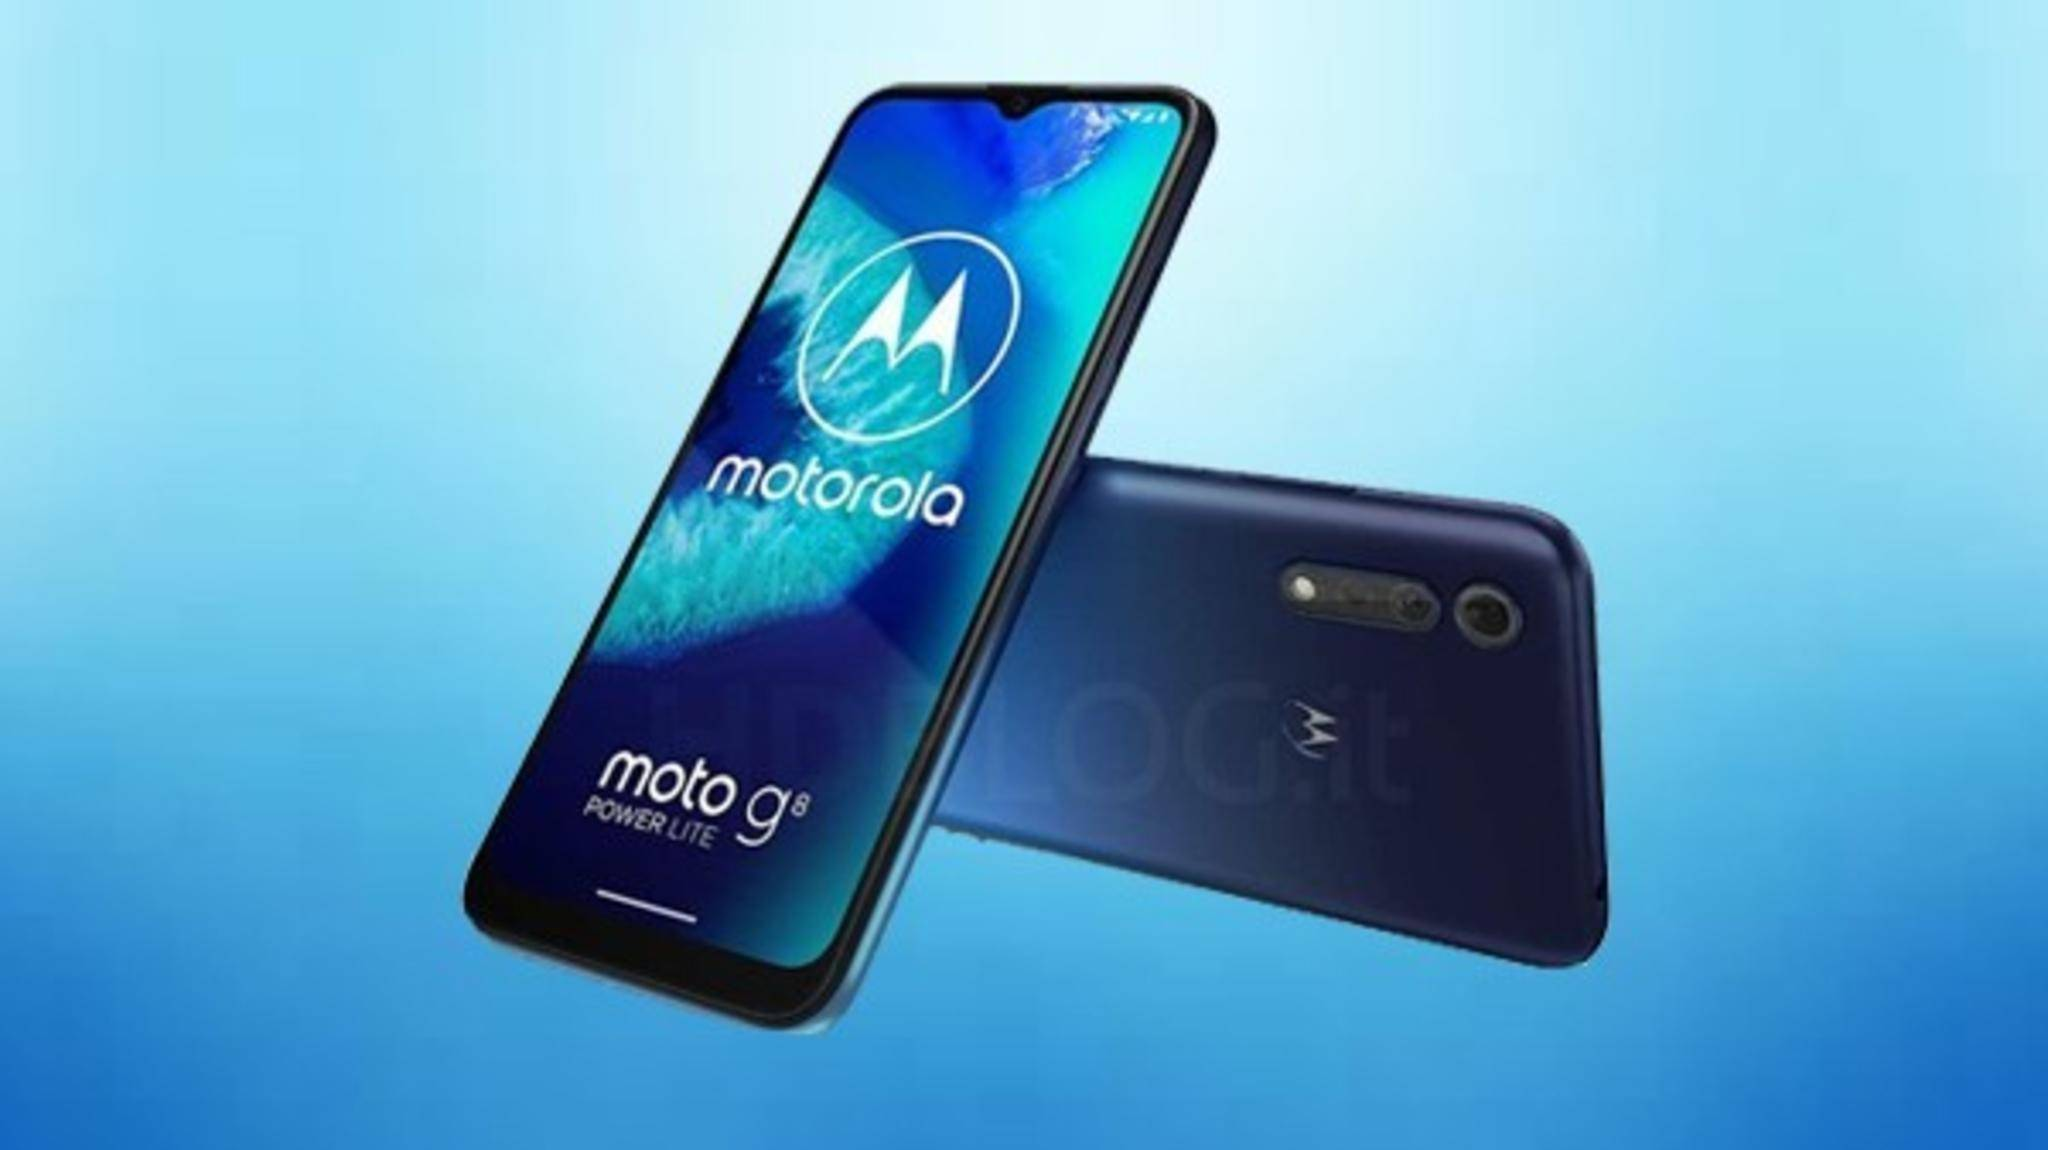 motorola-moto-g8-power-lite-new-renders-surface-online1-1584941334